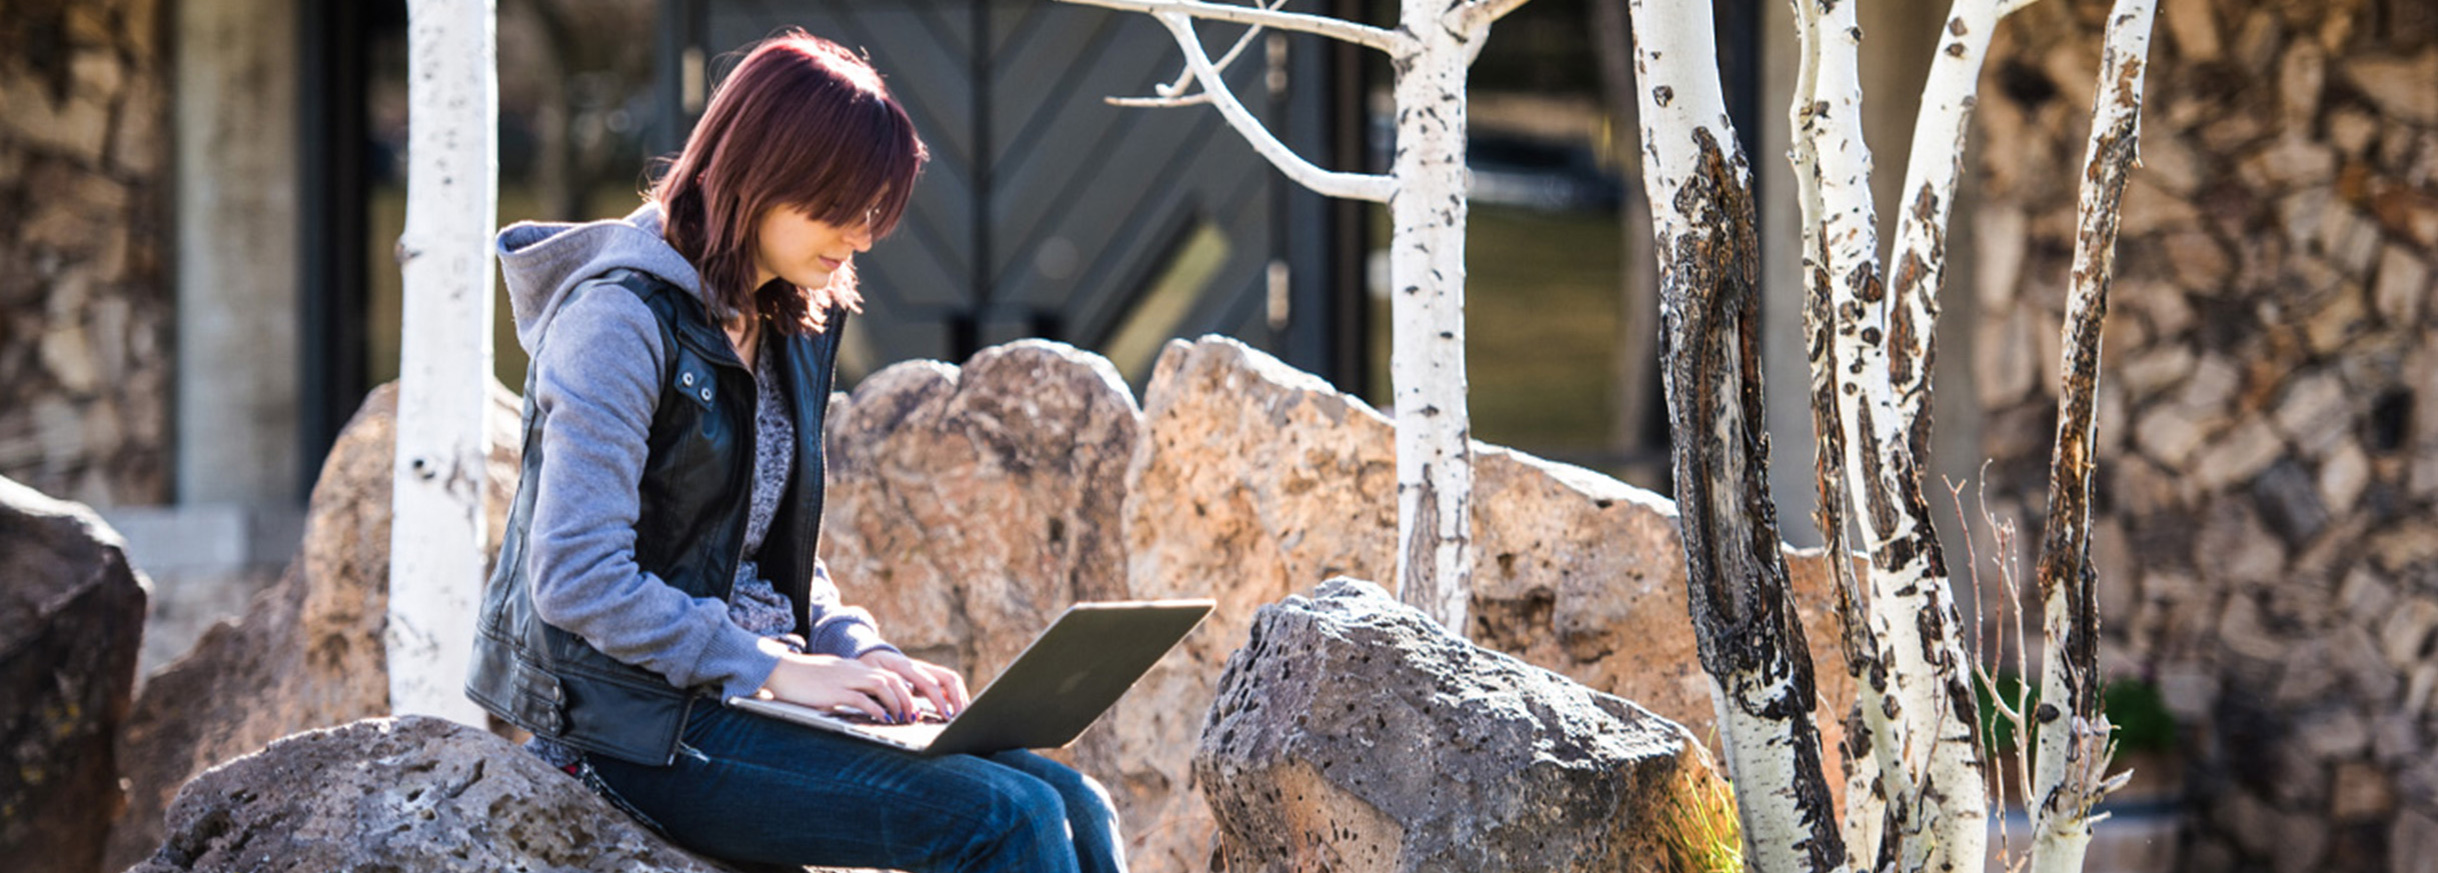 Student sitting with laptop computer outdoors on campus